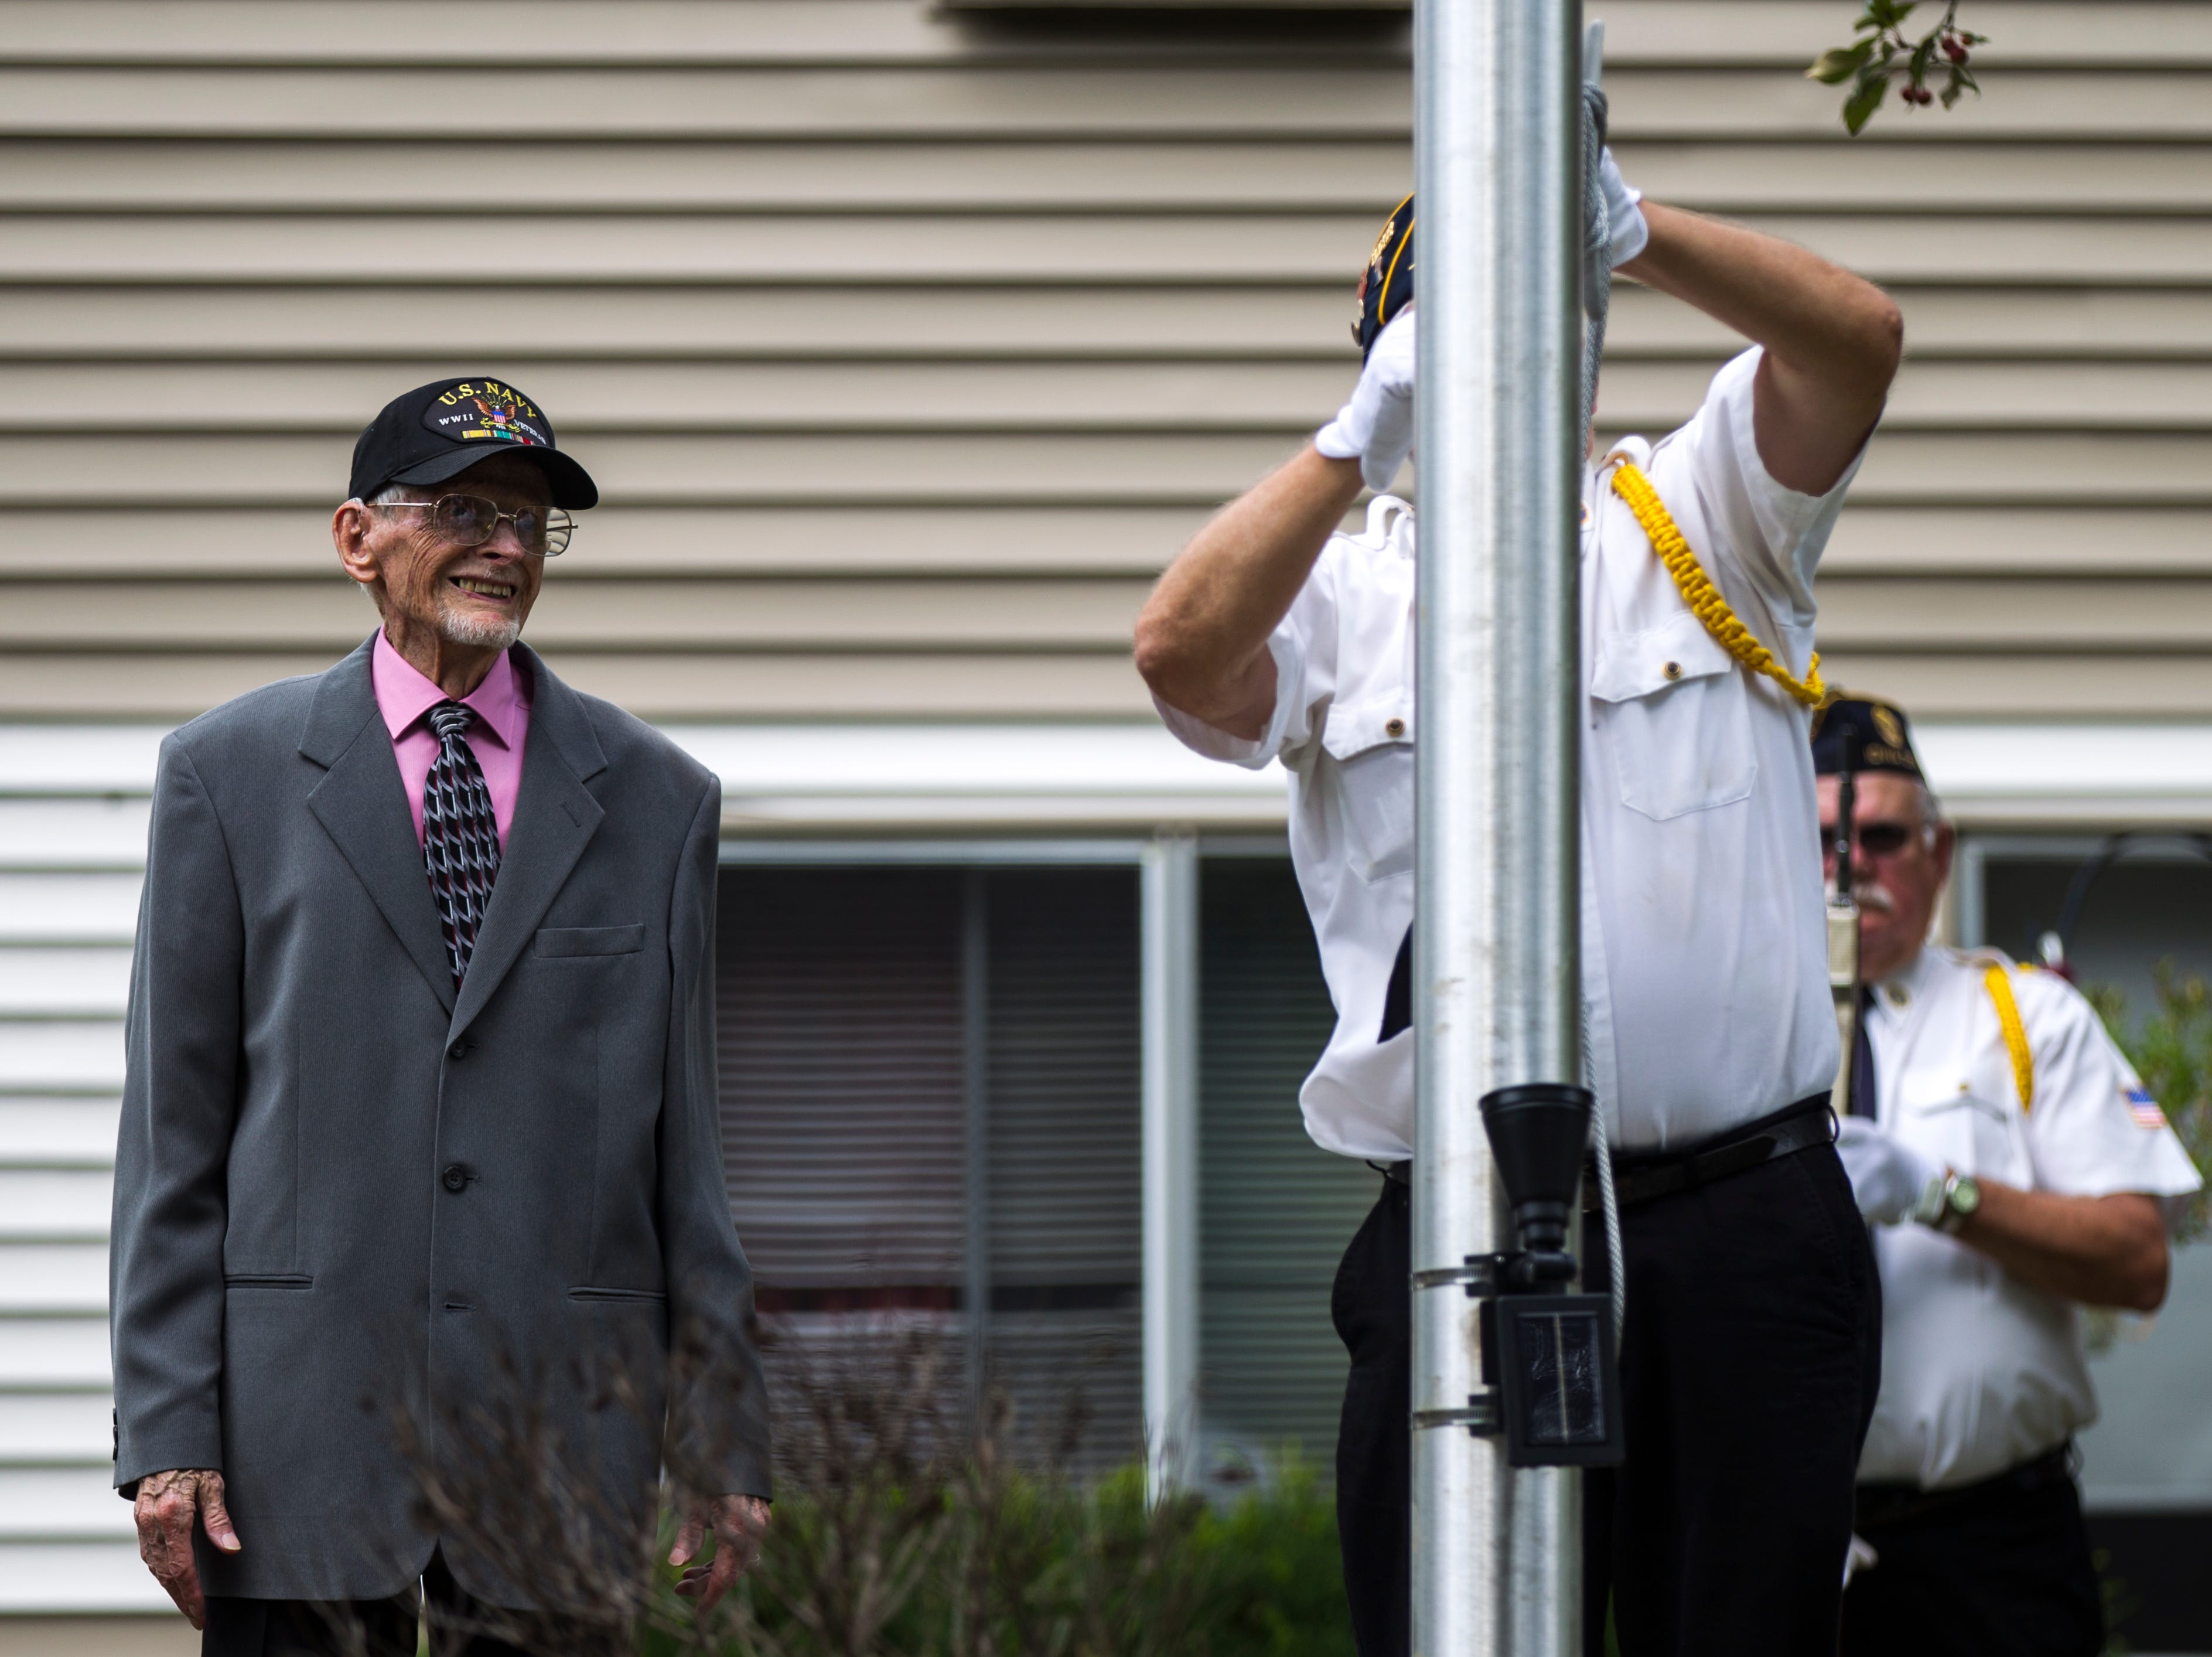 World War II U.S. Navy veteran Russell H. Ware (left) watches American Legion Post 721 honor guard Sgt. of arms Tom Travis raise a flag during a dedication ceremony on Monday, Sept. 3, 2018, at the Autumn Park Apartments in Iowa City.